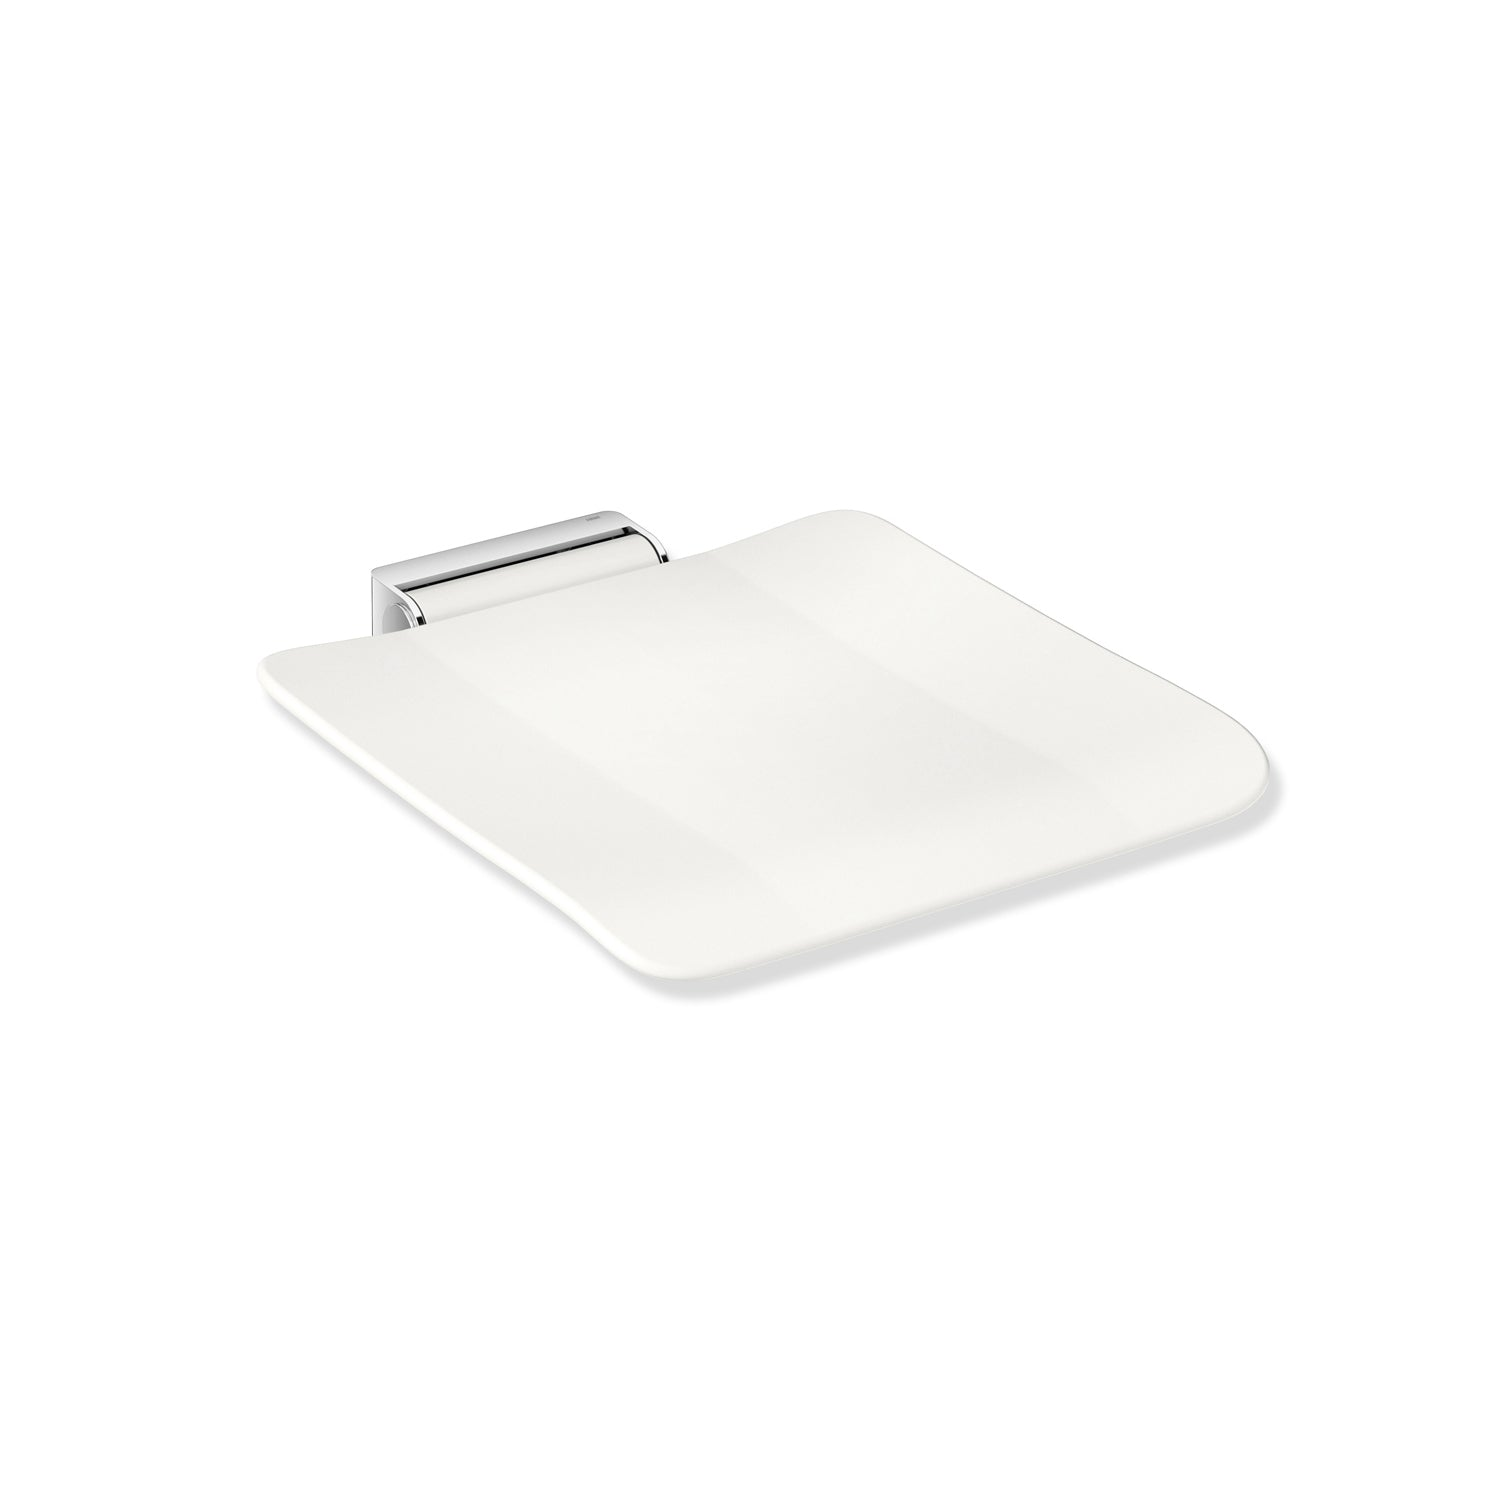 Freestyle Removable Shower Seat with a white seat and chrome bracket on a white background